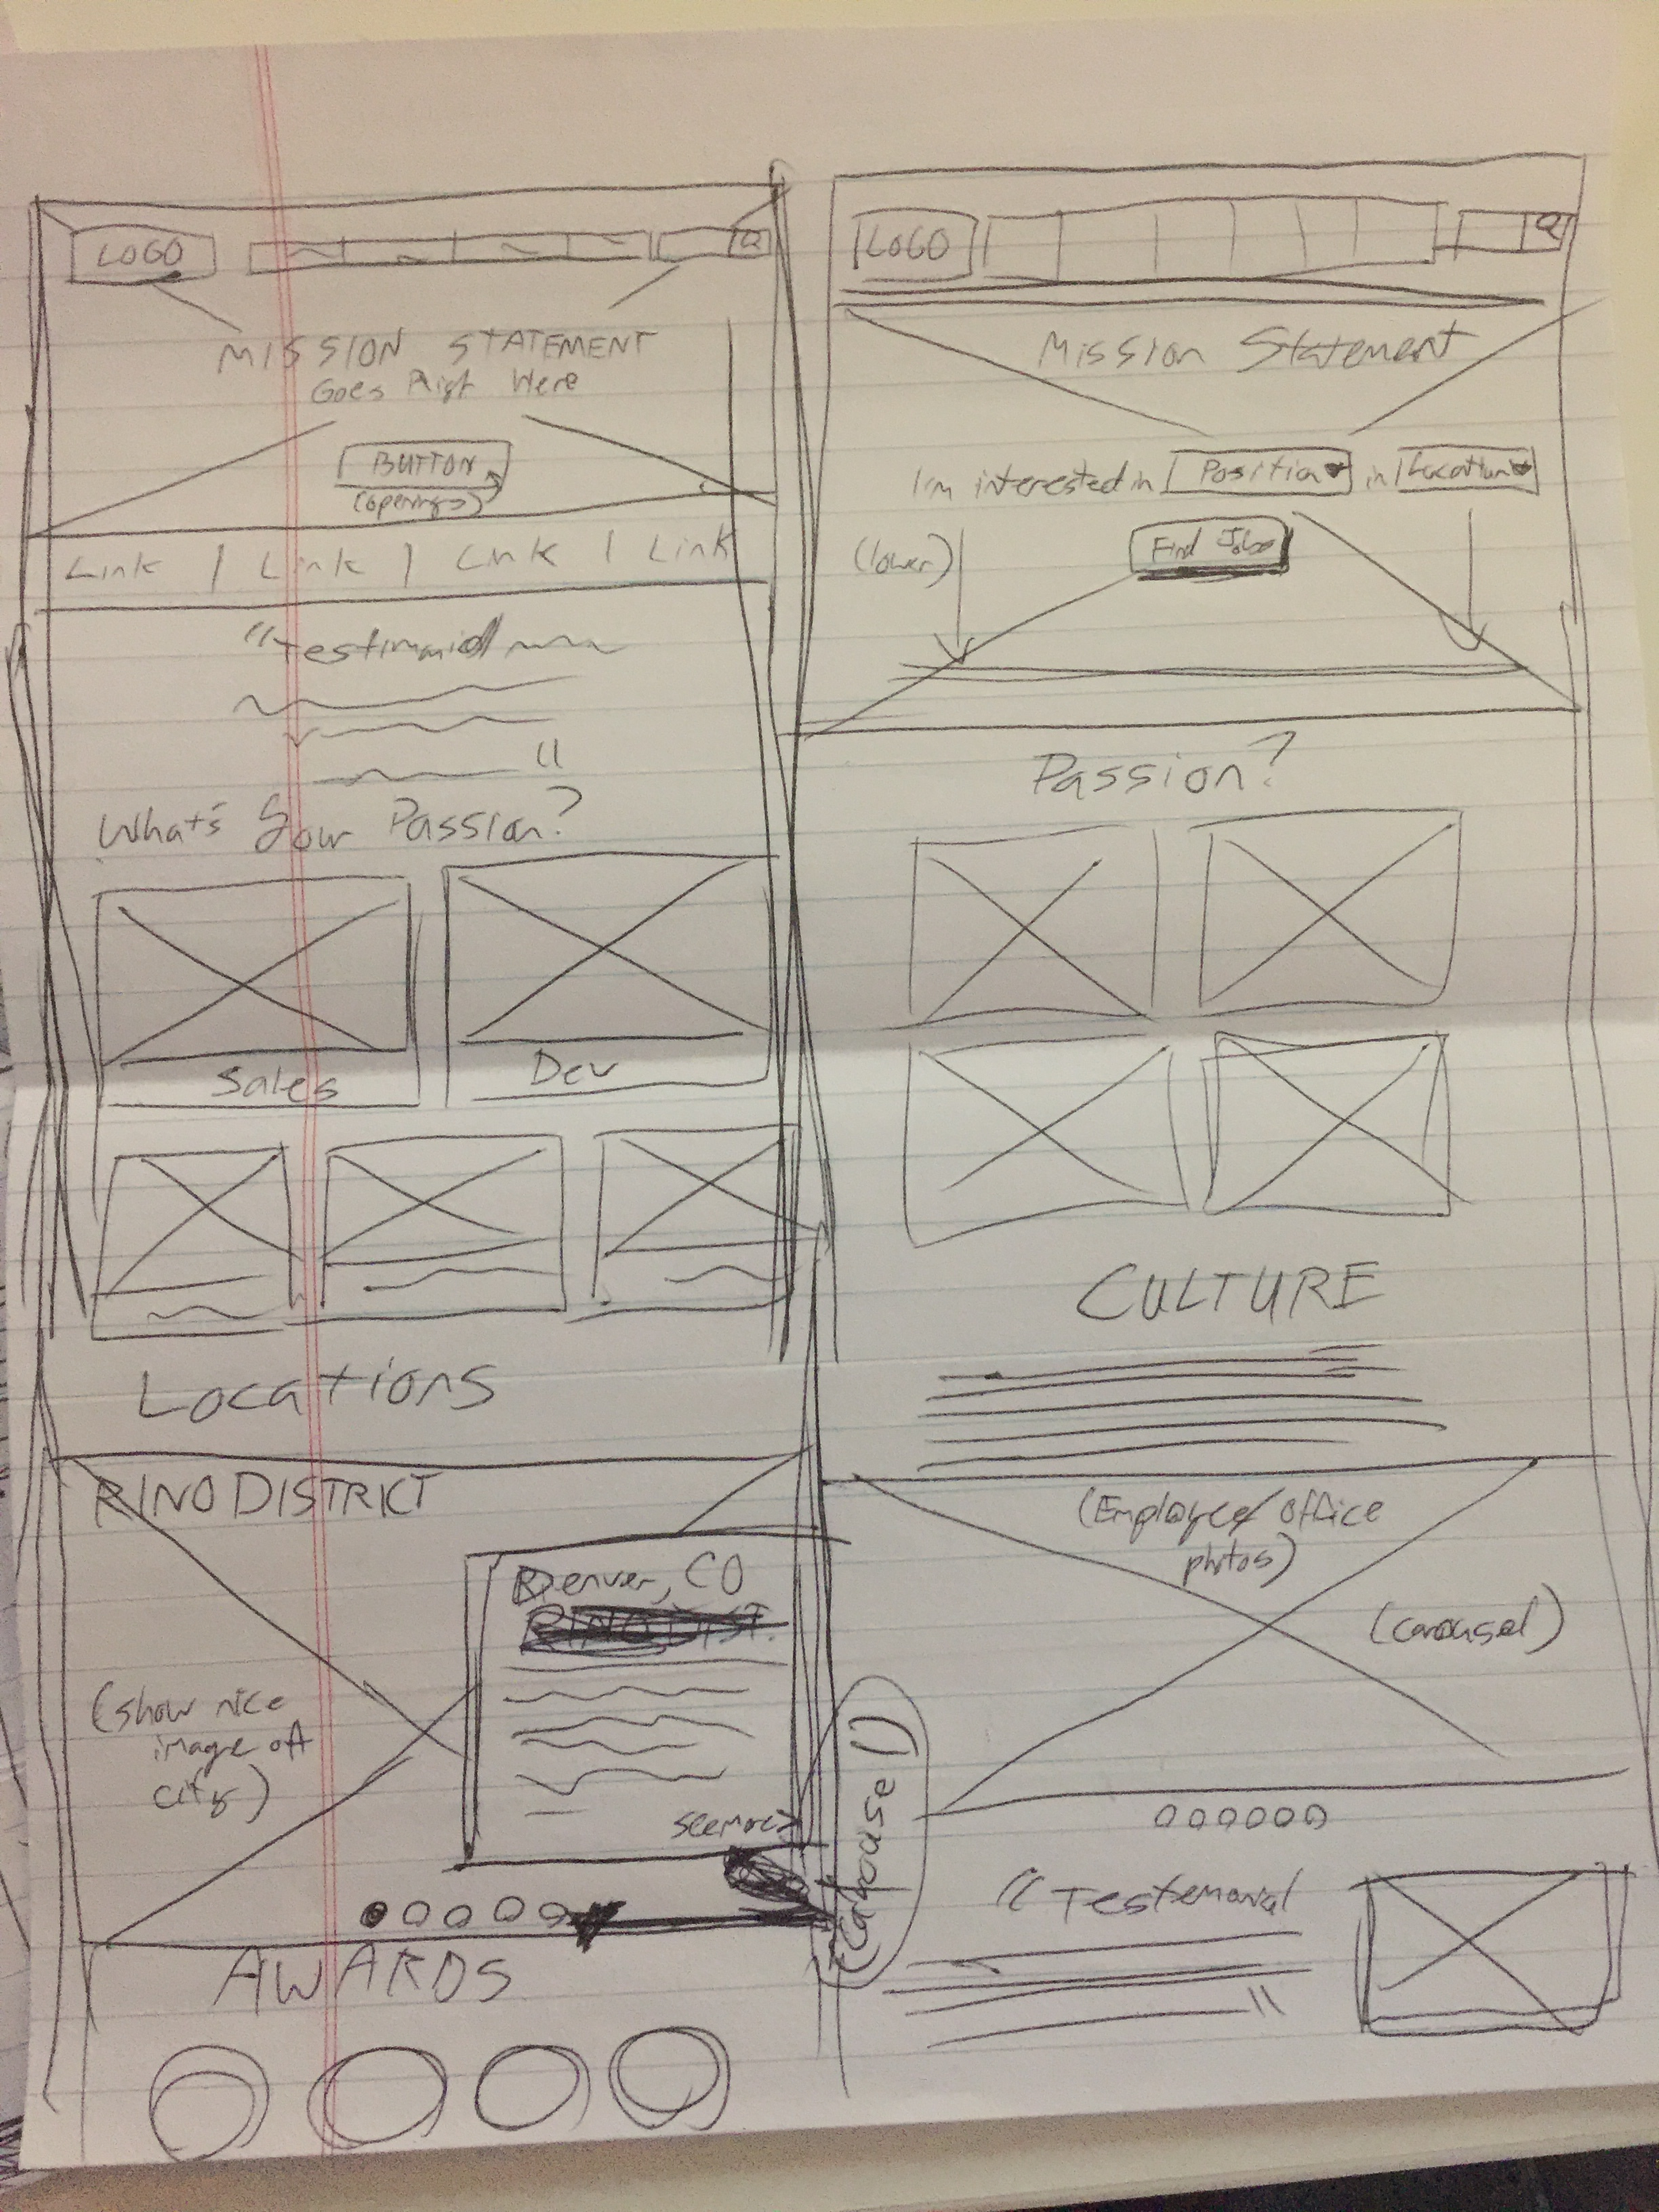 lo-fi careers page wireframes